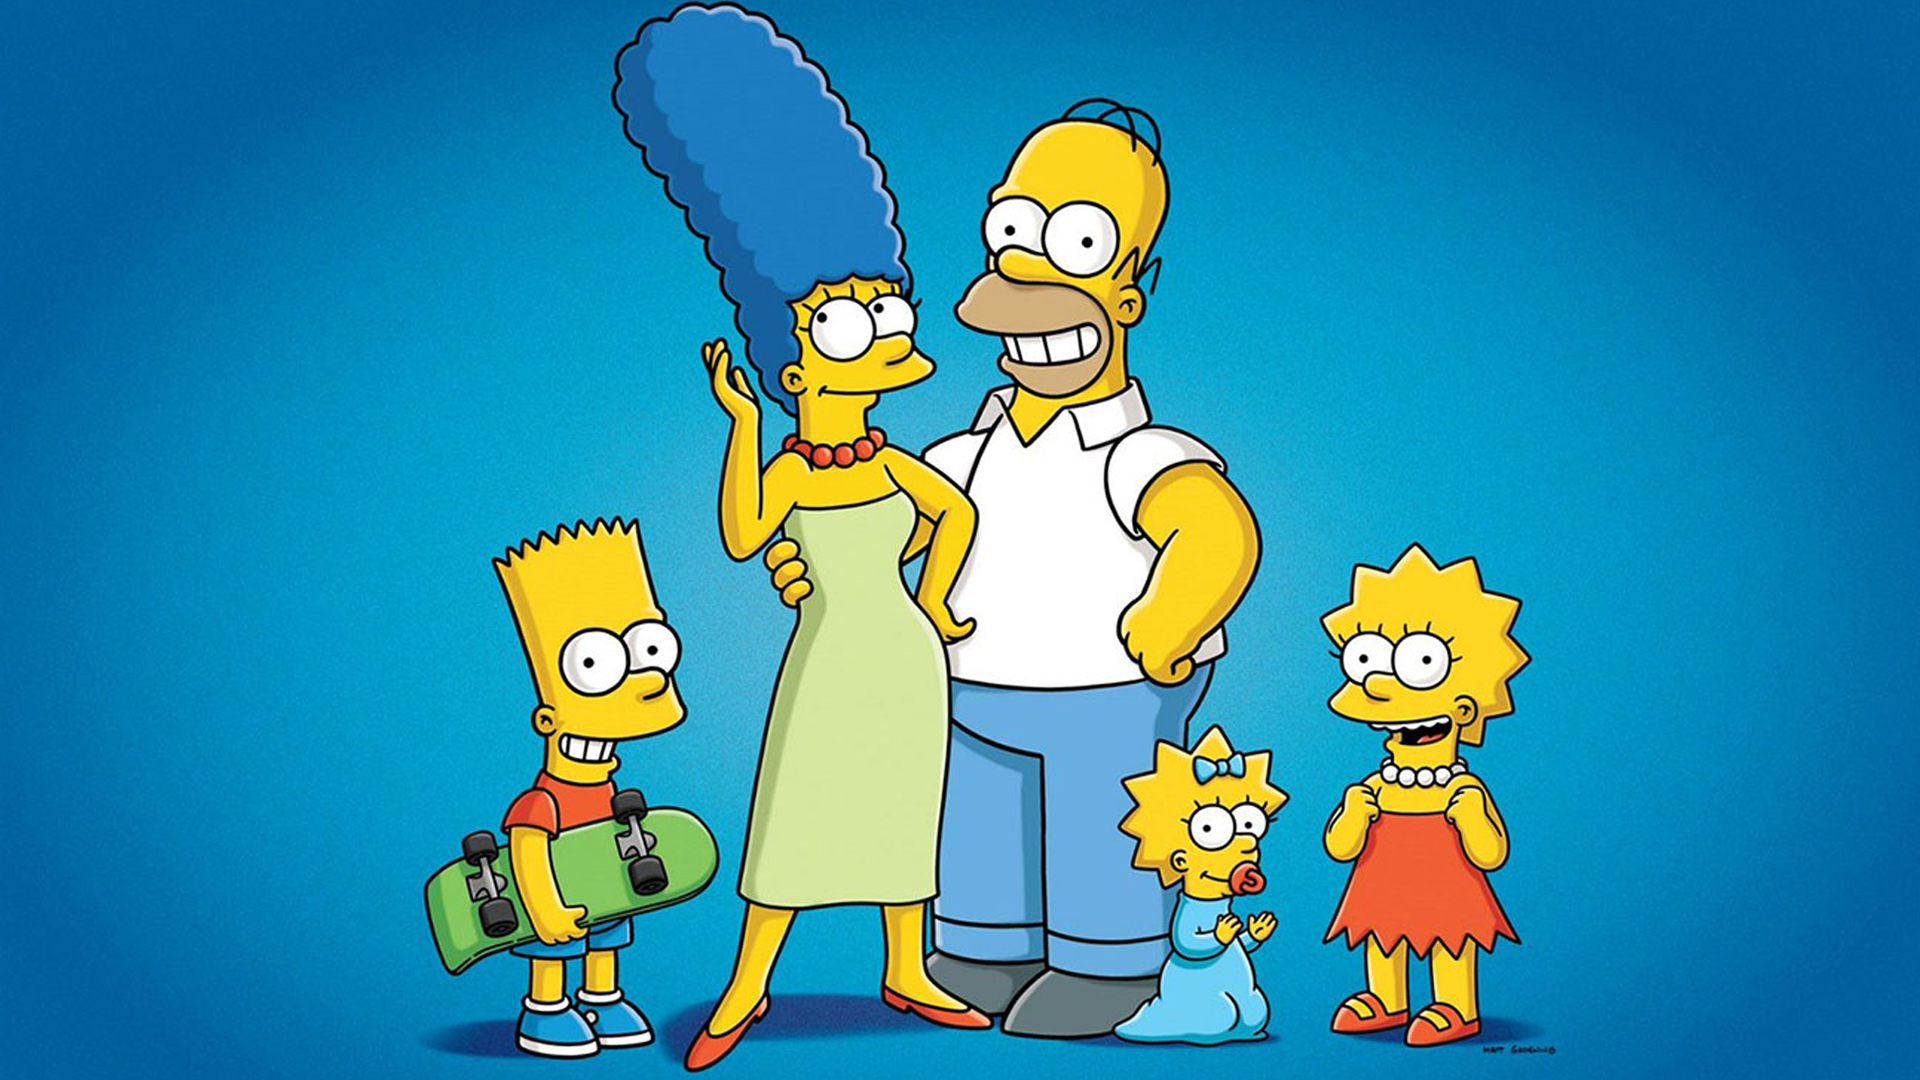 An image of the Simpsons